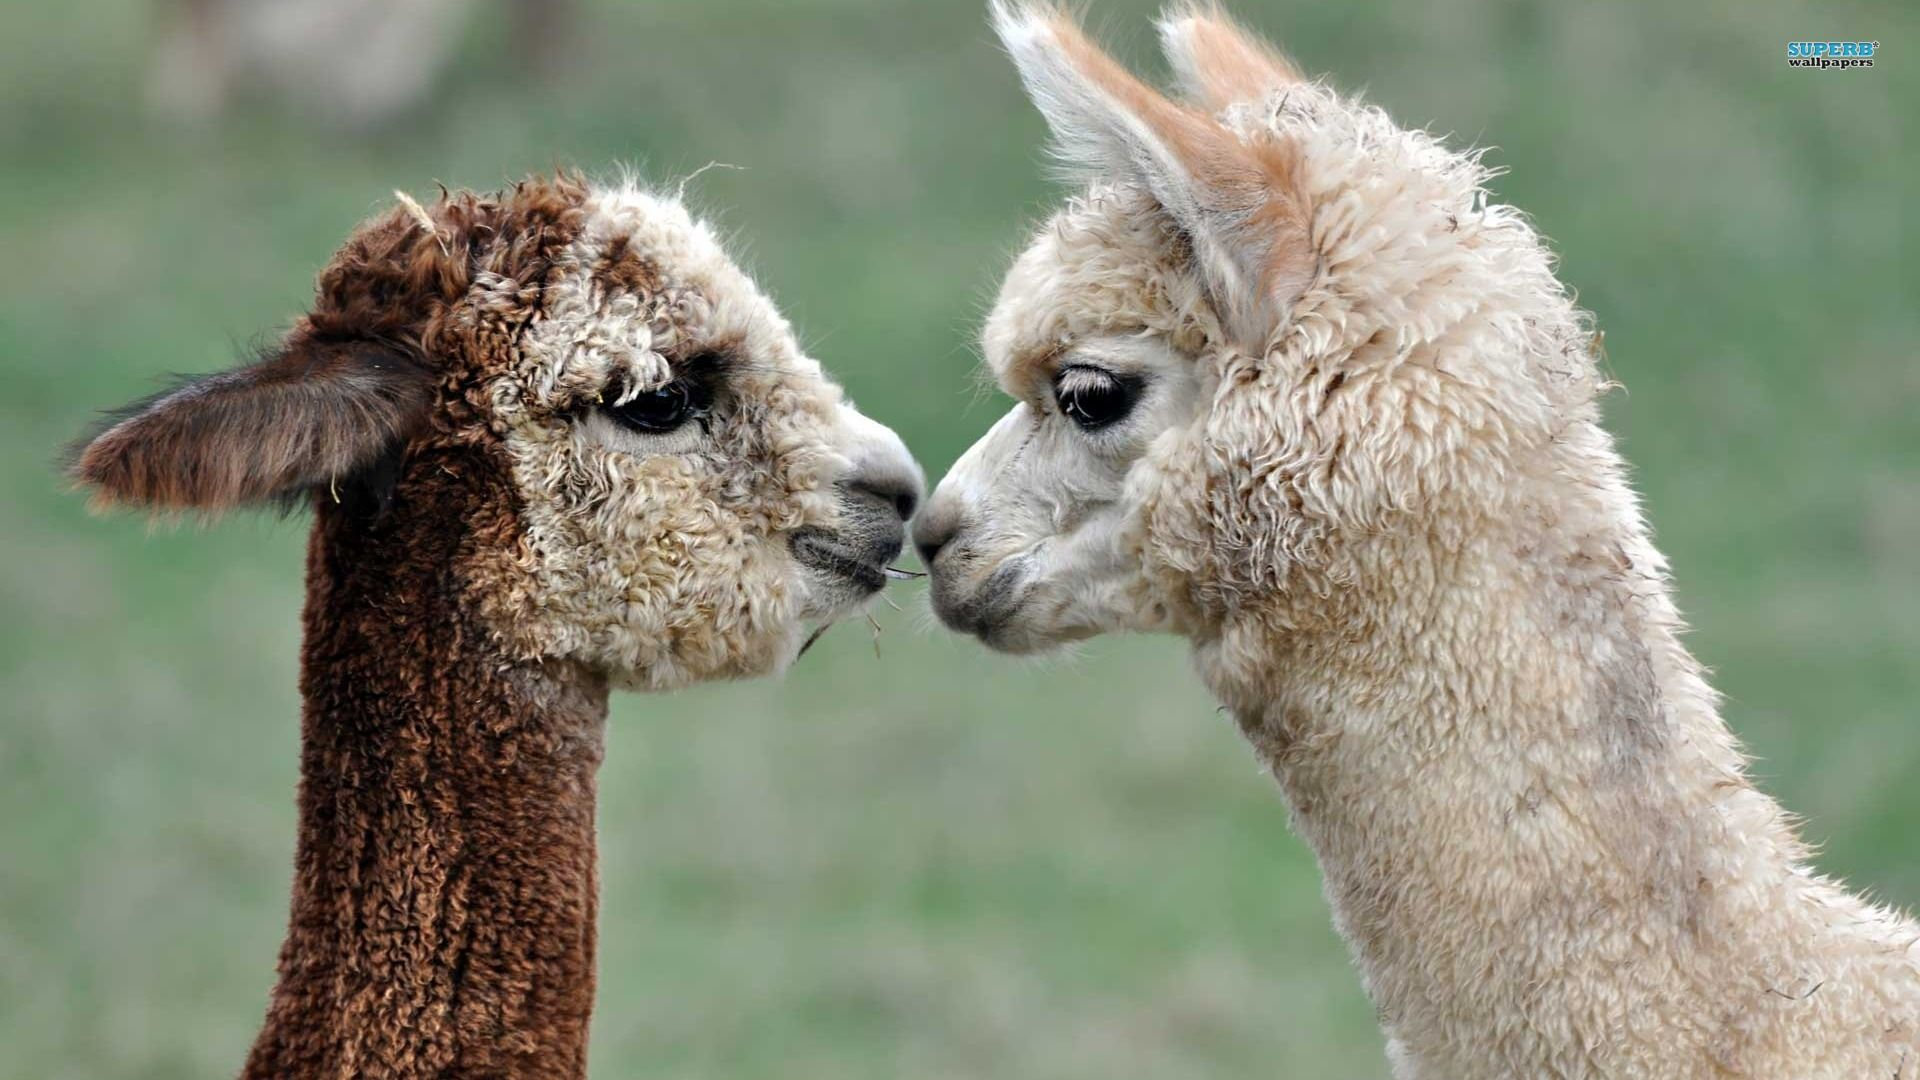 Best HD Alpaca Wallpapers FeelgrPH 1920×1080 Alpaca